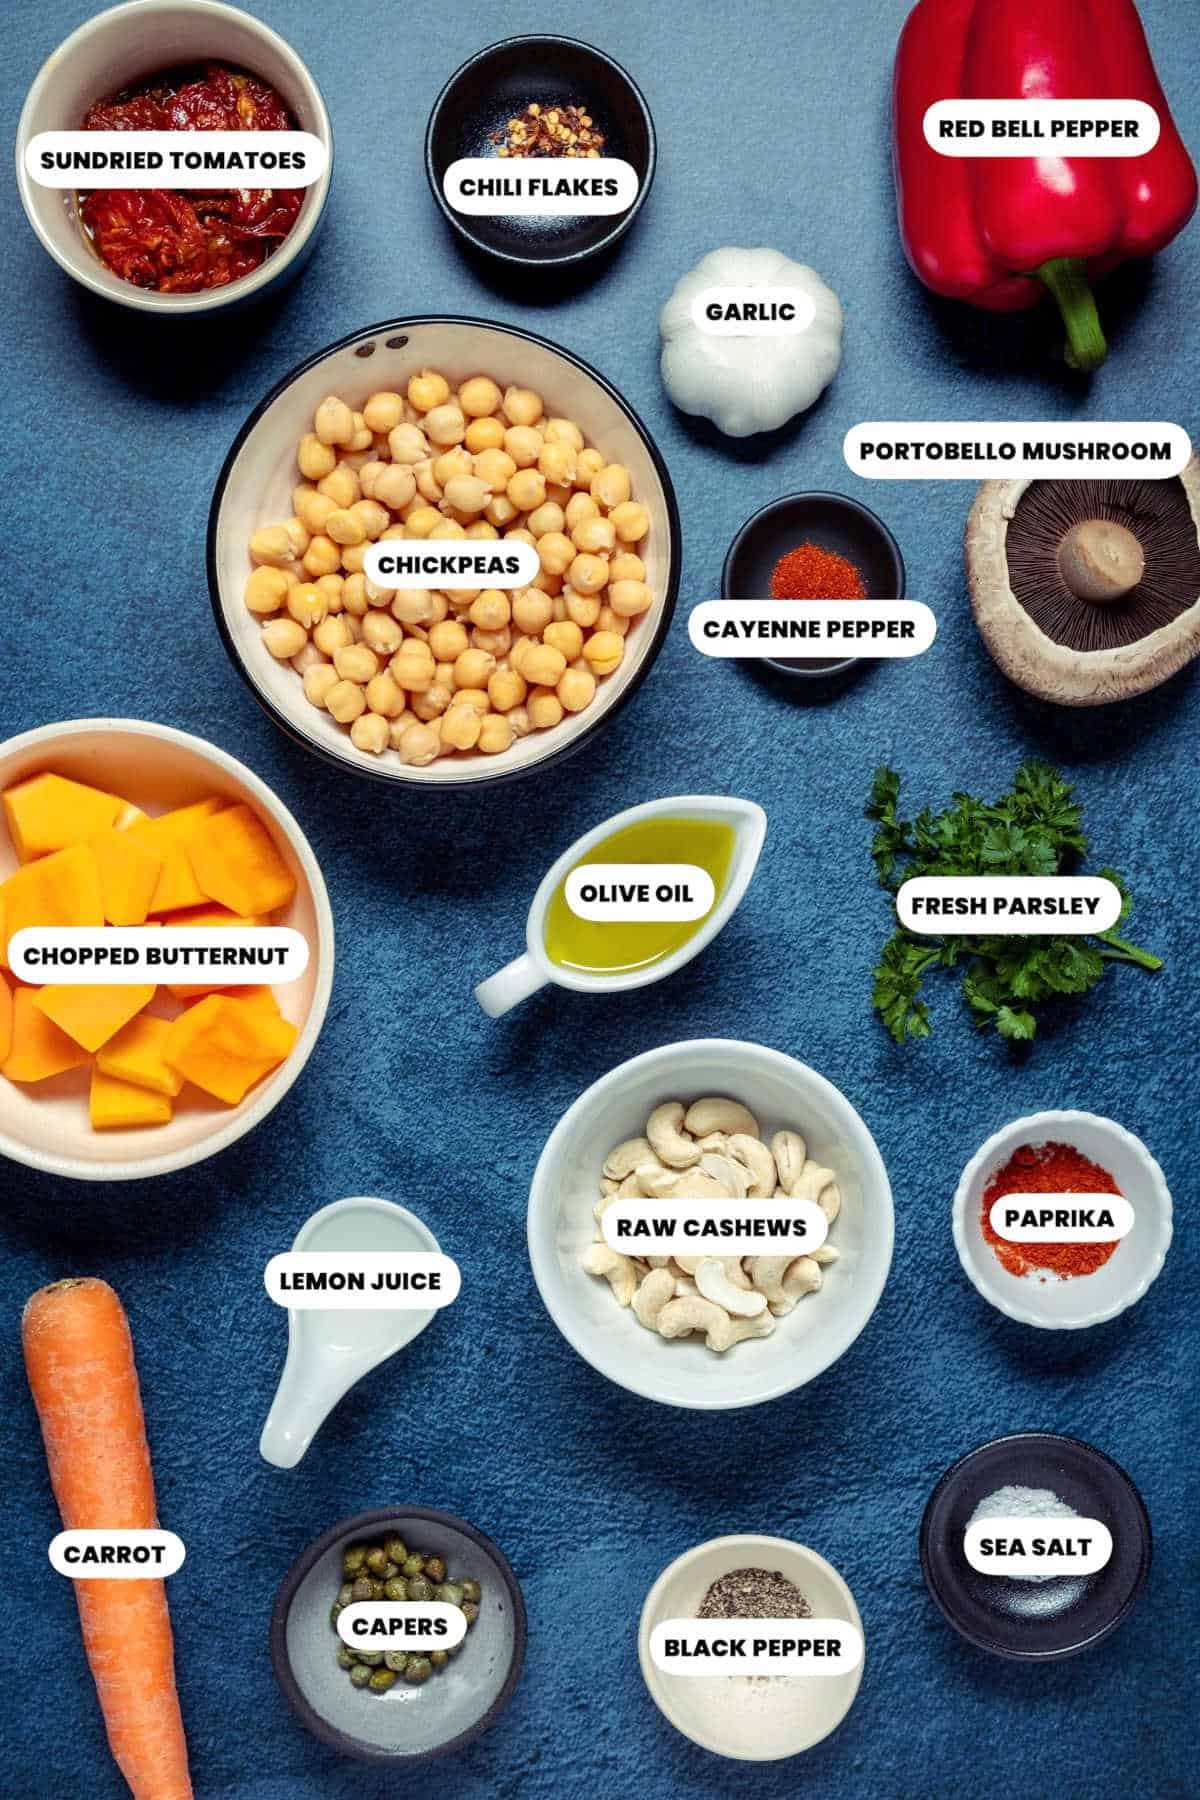 Photo of the ingredients needed to make vegan pâté.